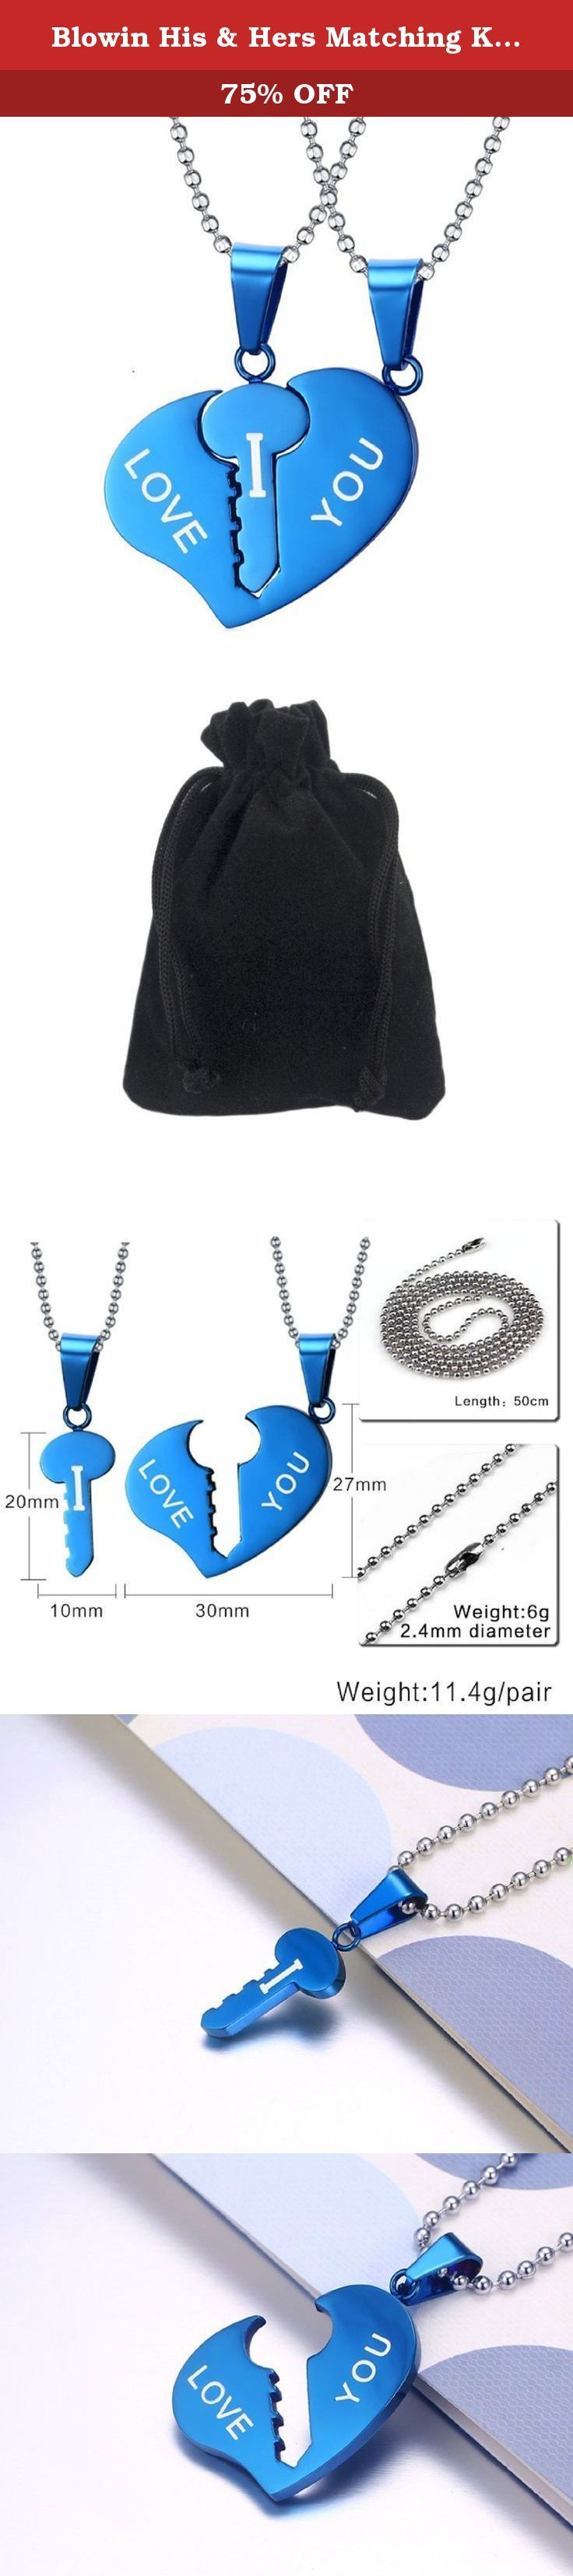 "Blowin His & Hers Matching Key to Heart Set Stainless Steel ""I LOVE YOU"" Valentine Couple Pendant Necklace, Blue. Blowin His & Hers Matching Key to Heart Set Stainless Steel ""I LOVE YOU"" Valentine Couple Pendant Necklace, Blue Material: Stainless Steel; Hypoallergenic Package Included: 2 x Blowin Stainless Steel Penant with 2 Free Chain 1 x Gift bag Features Stainless Steel Jewelry Green high-grade green jewelry - it is completely not produce any side effects on the human body. Never fade…"